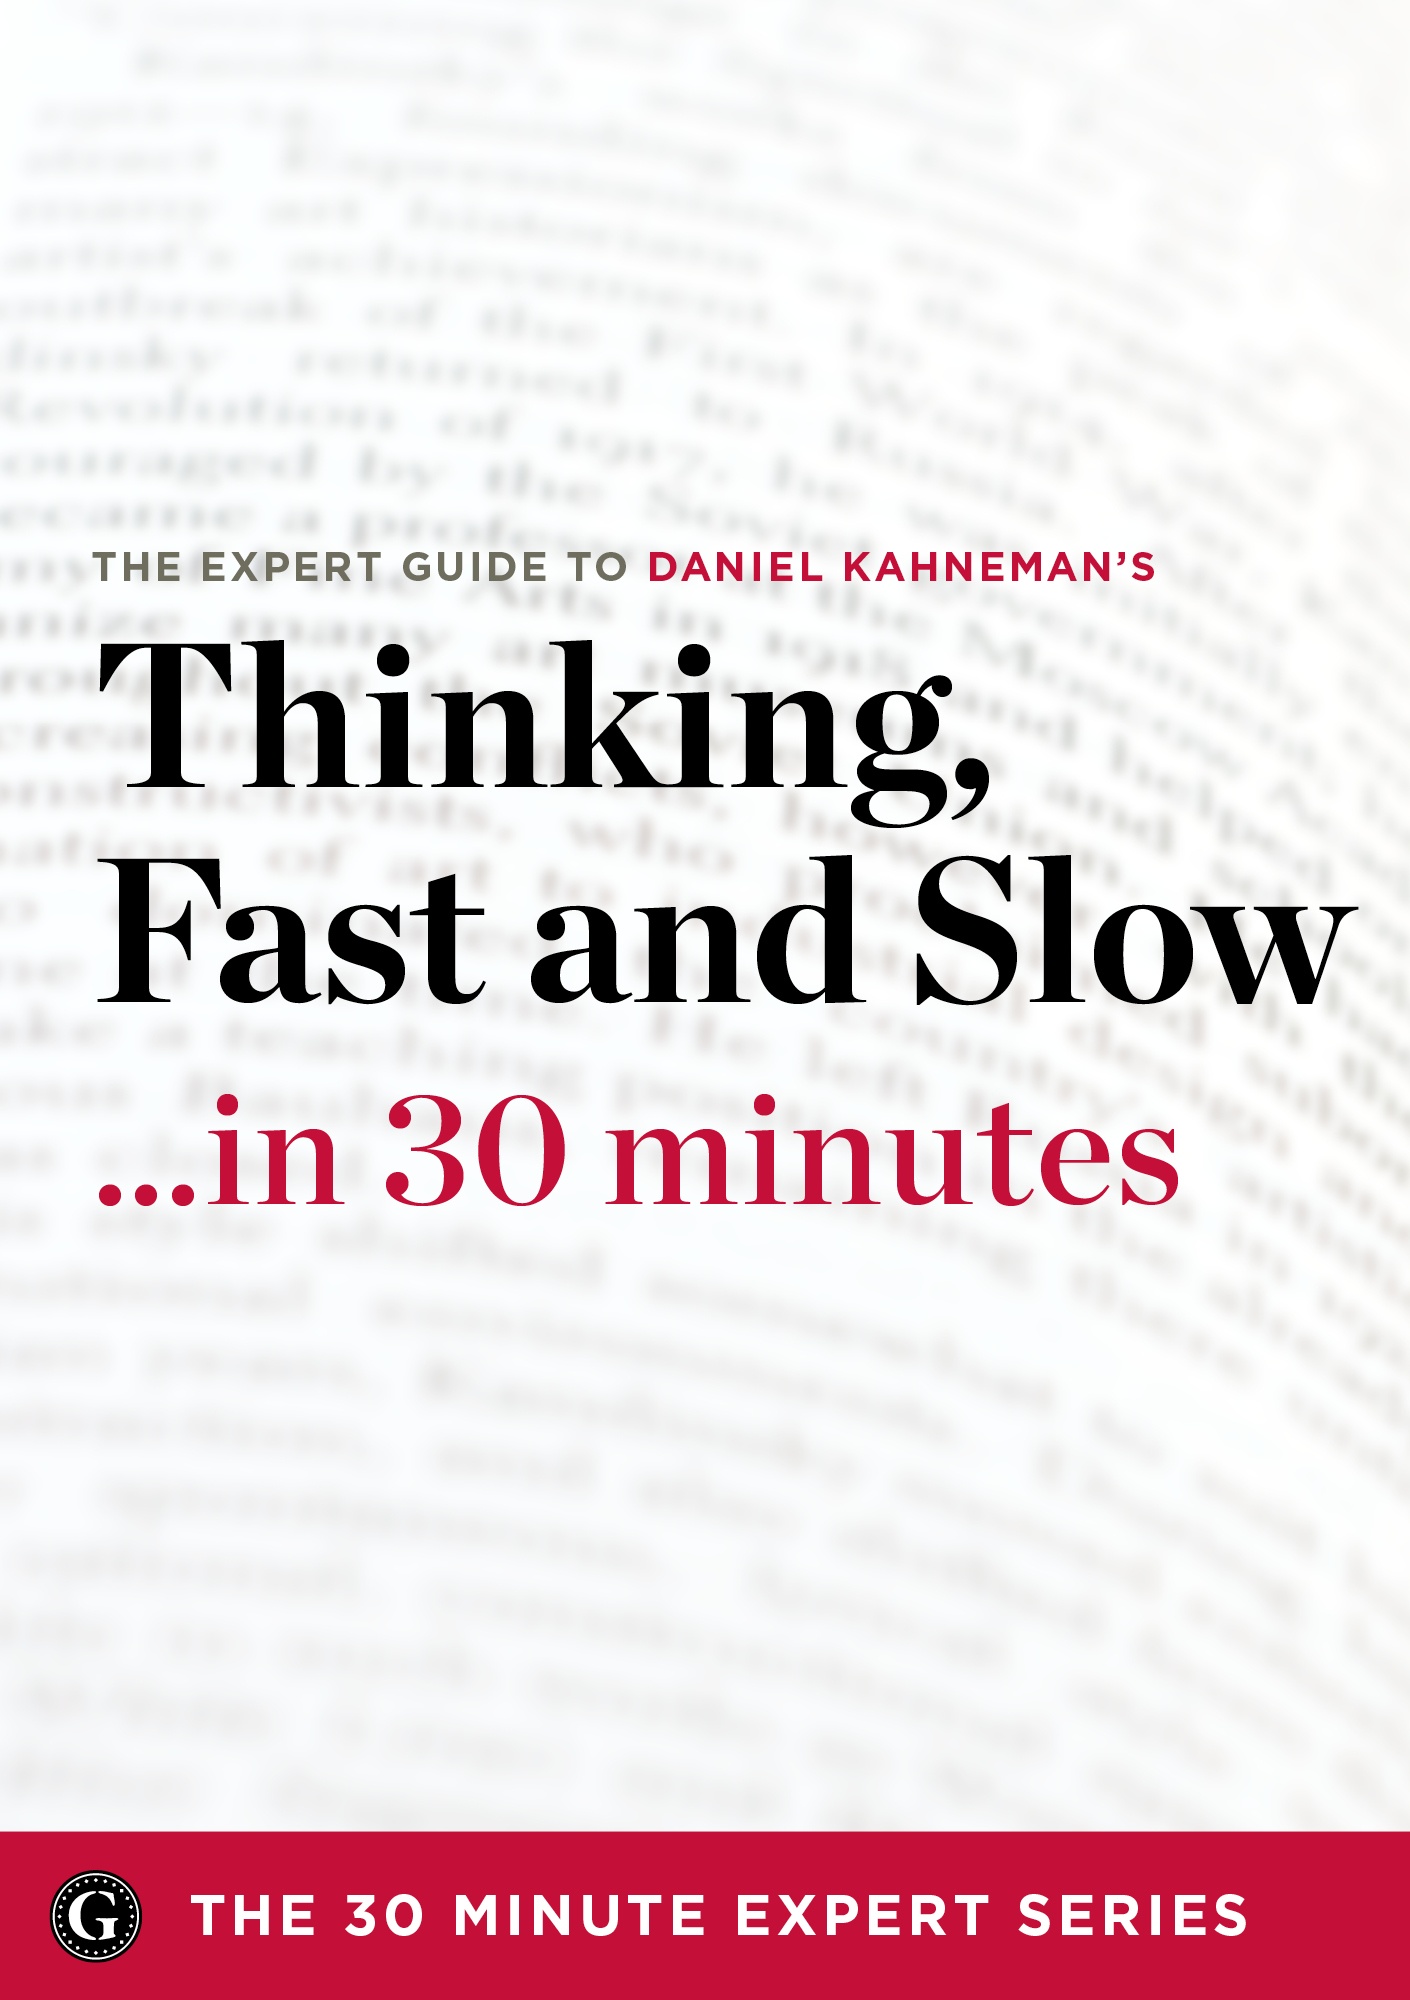 Thinking Fast and Slow in 30 Minutes  - The Expert Guide to Daniel Kahneman's Critically Acclaimed Book (The 30 Minute Expert Series)